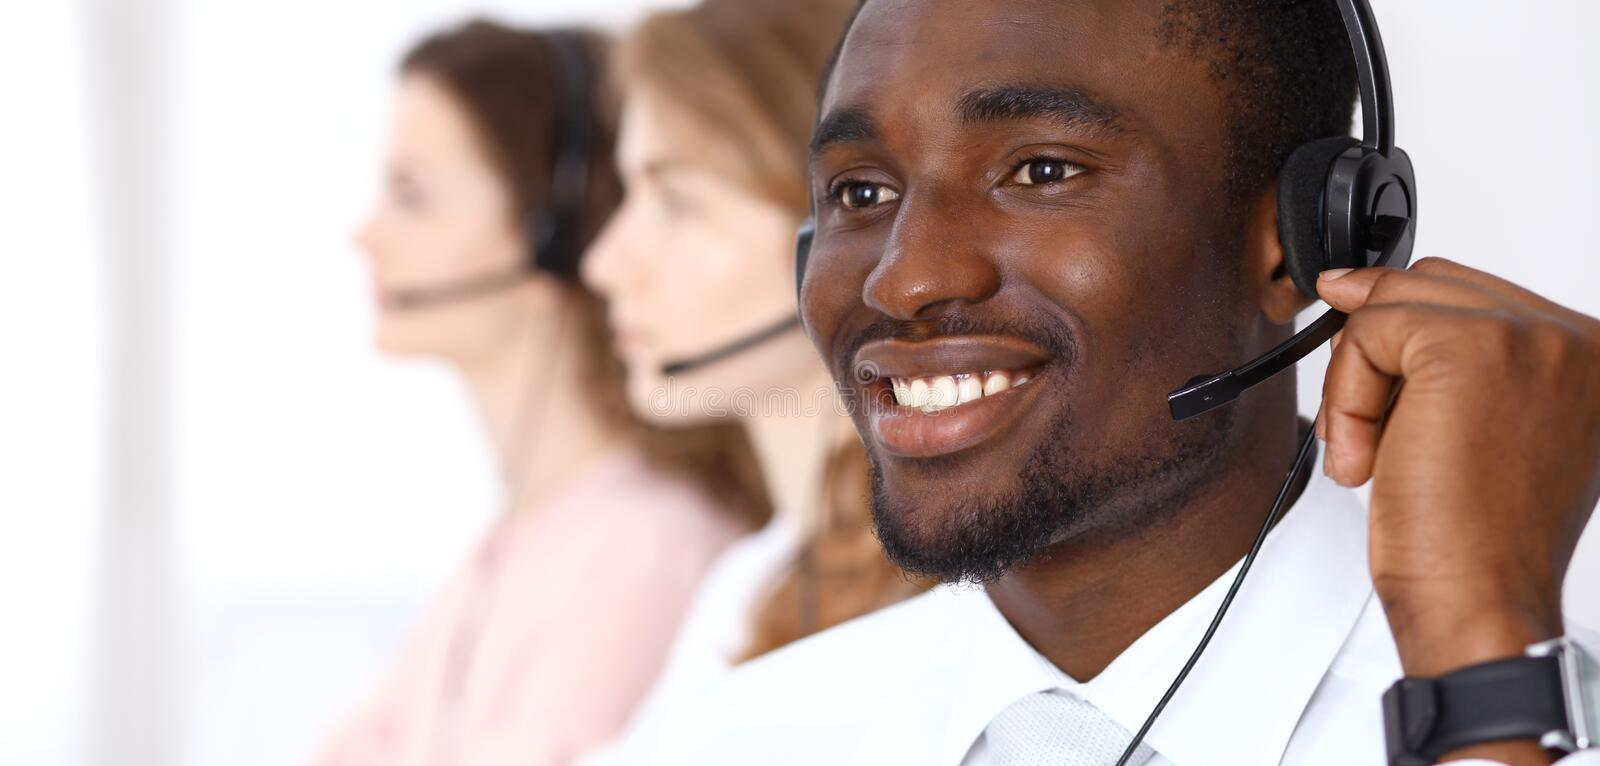 African american call operator in headset. Call center business or customer service concept royalty free stock image